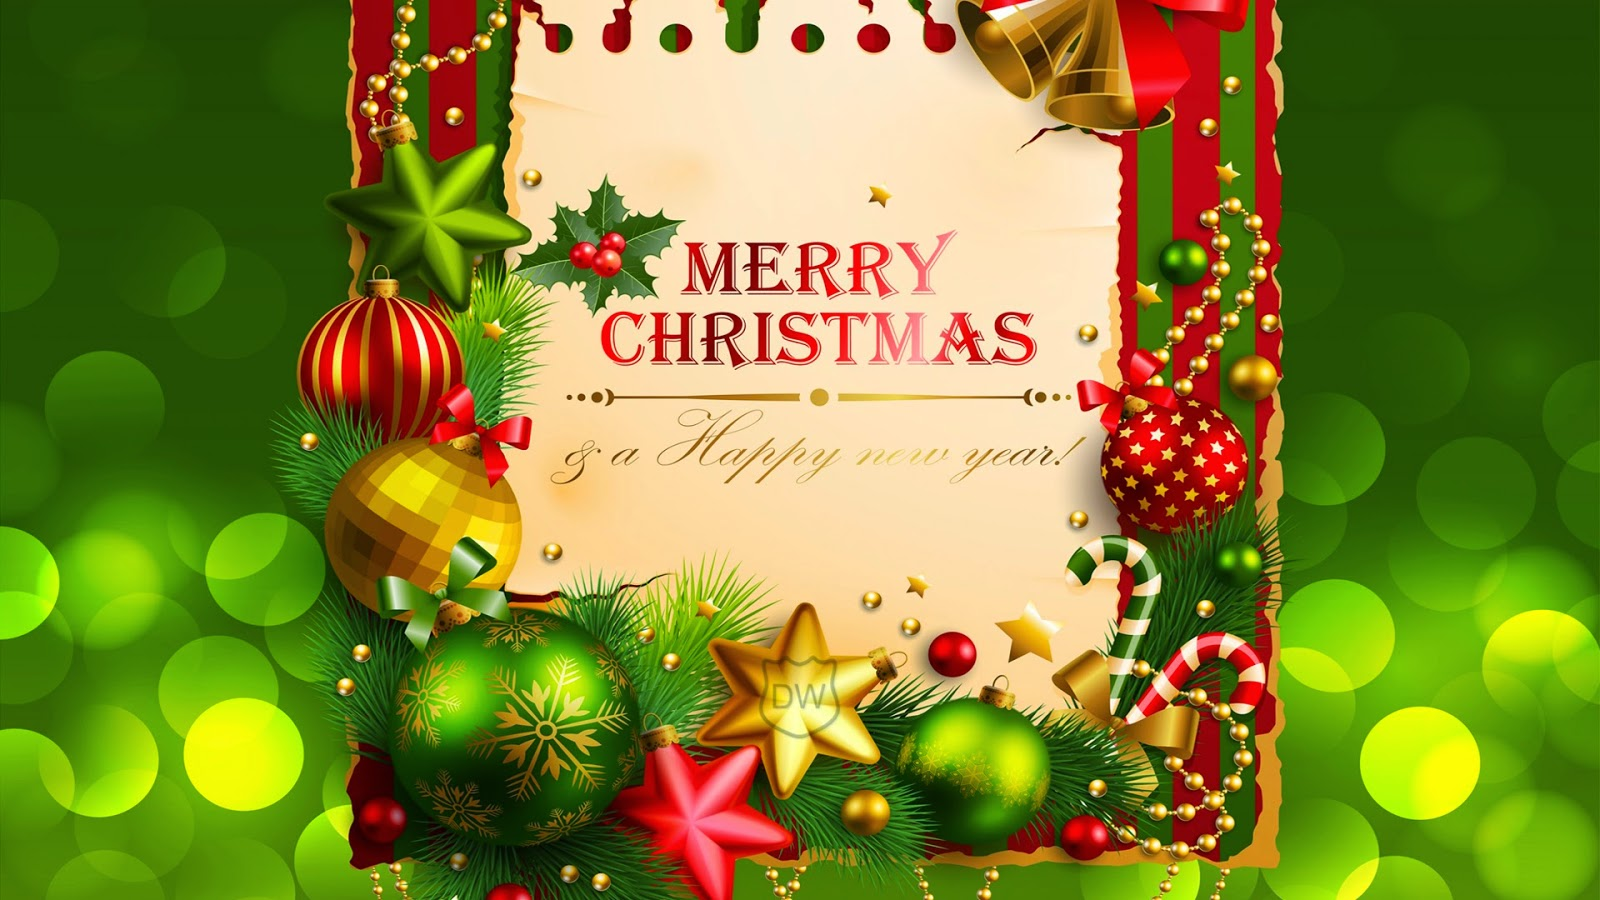 Merry Christmas Wallpaper 2015 HD #13546 Wallpaper | WallDiskPaper